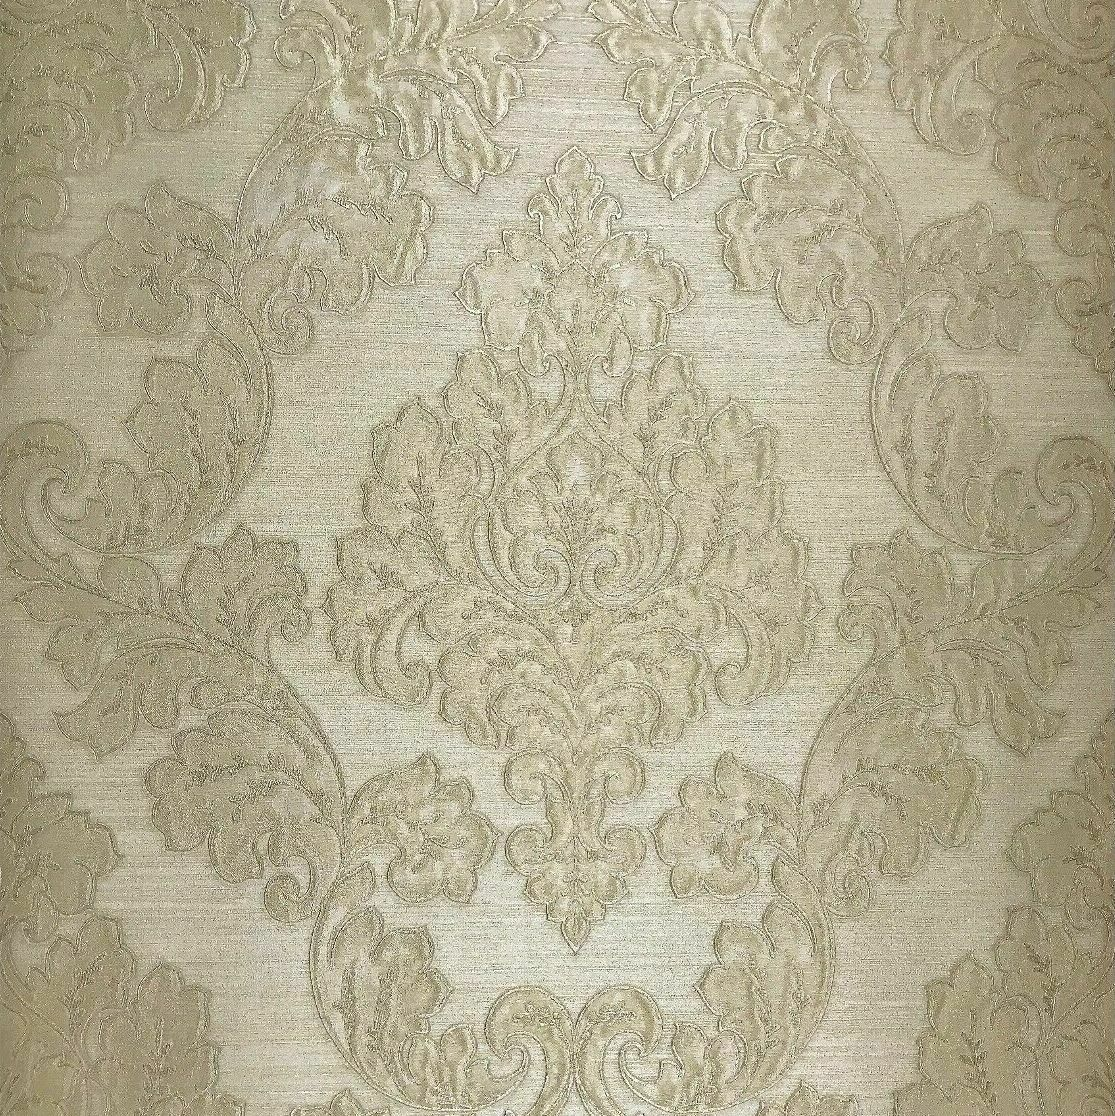 Details About Embossed Wallpaper Beige Ivory Gold Metallic